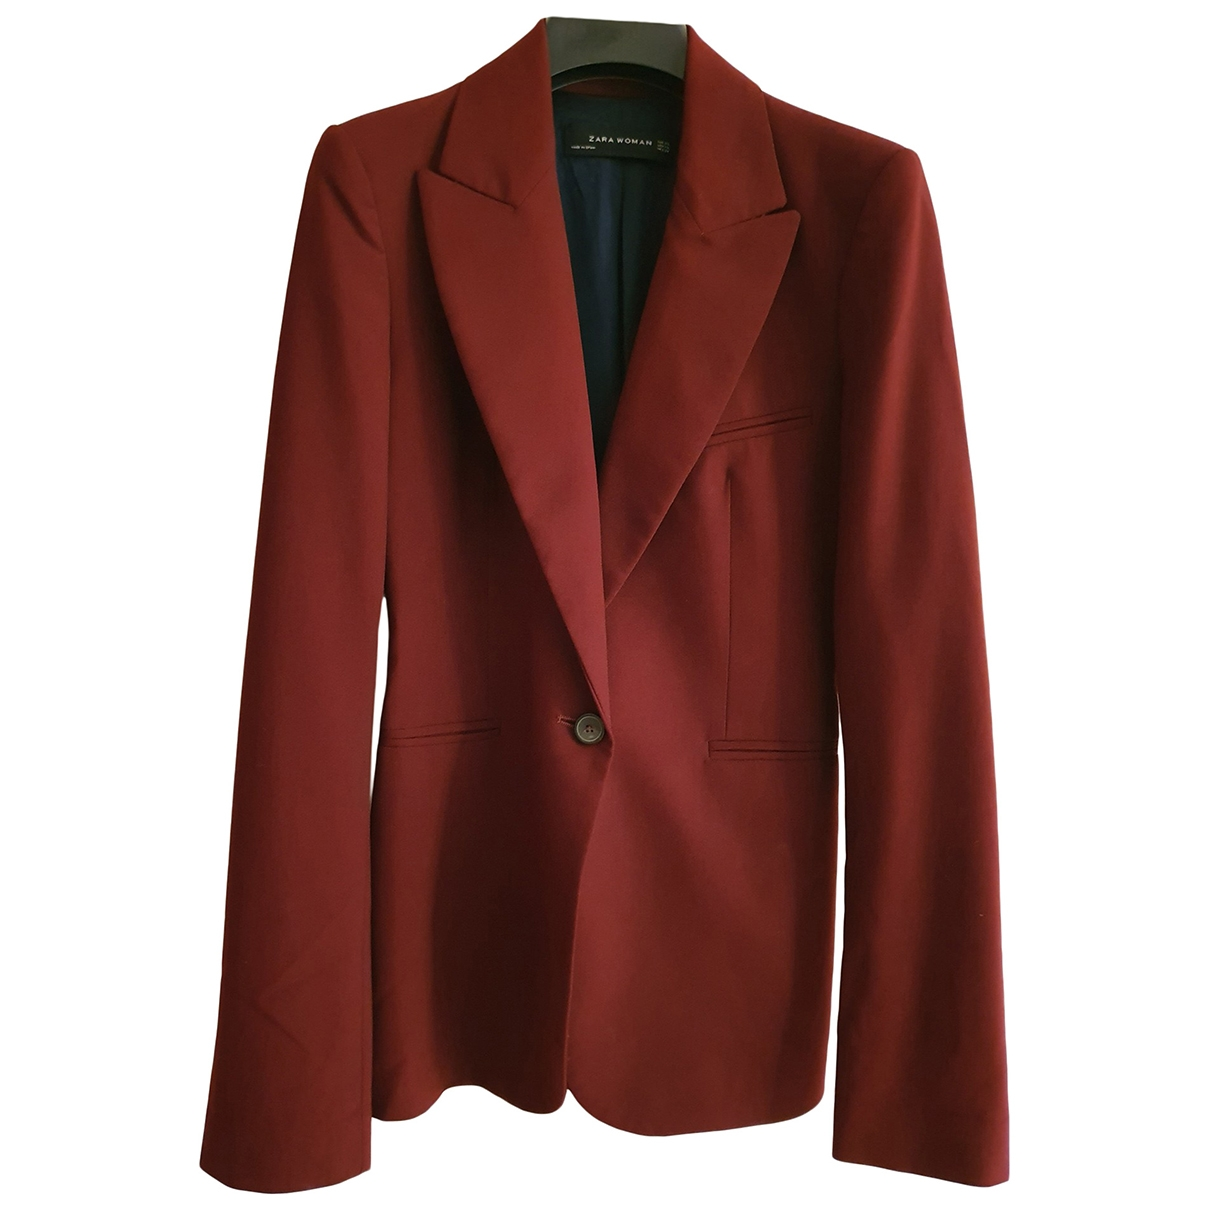 Zara \N Burgundy jacket for Women XS International